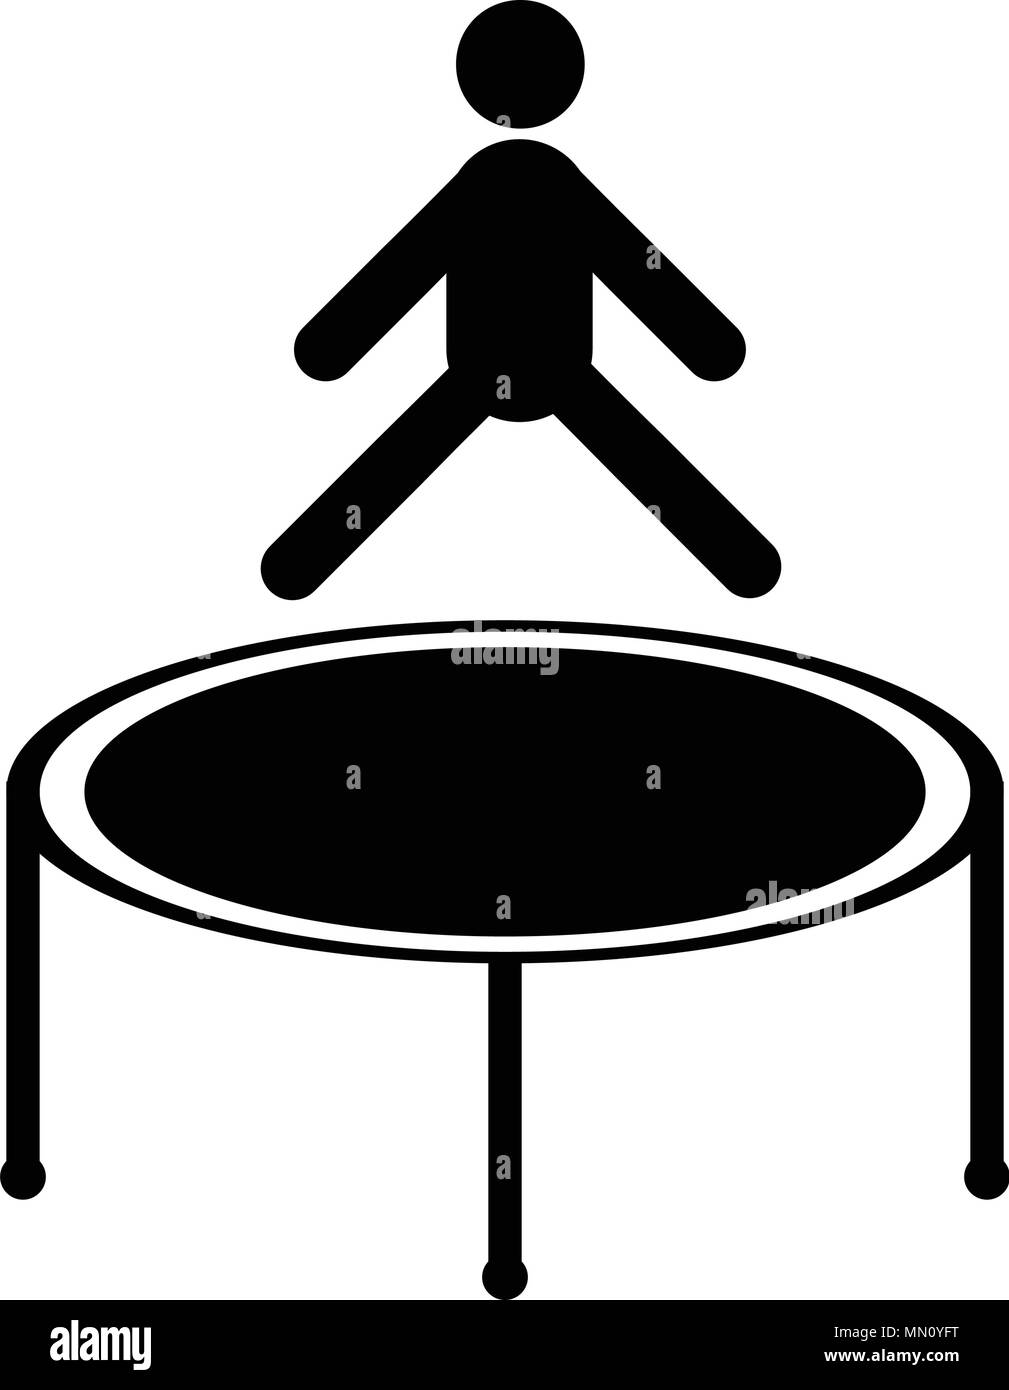 Jumping trampoline icon, isolated on white background - Stock Vector